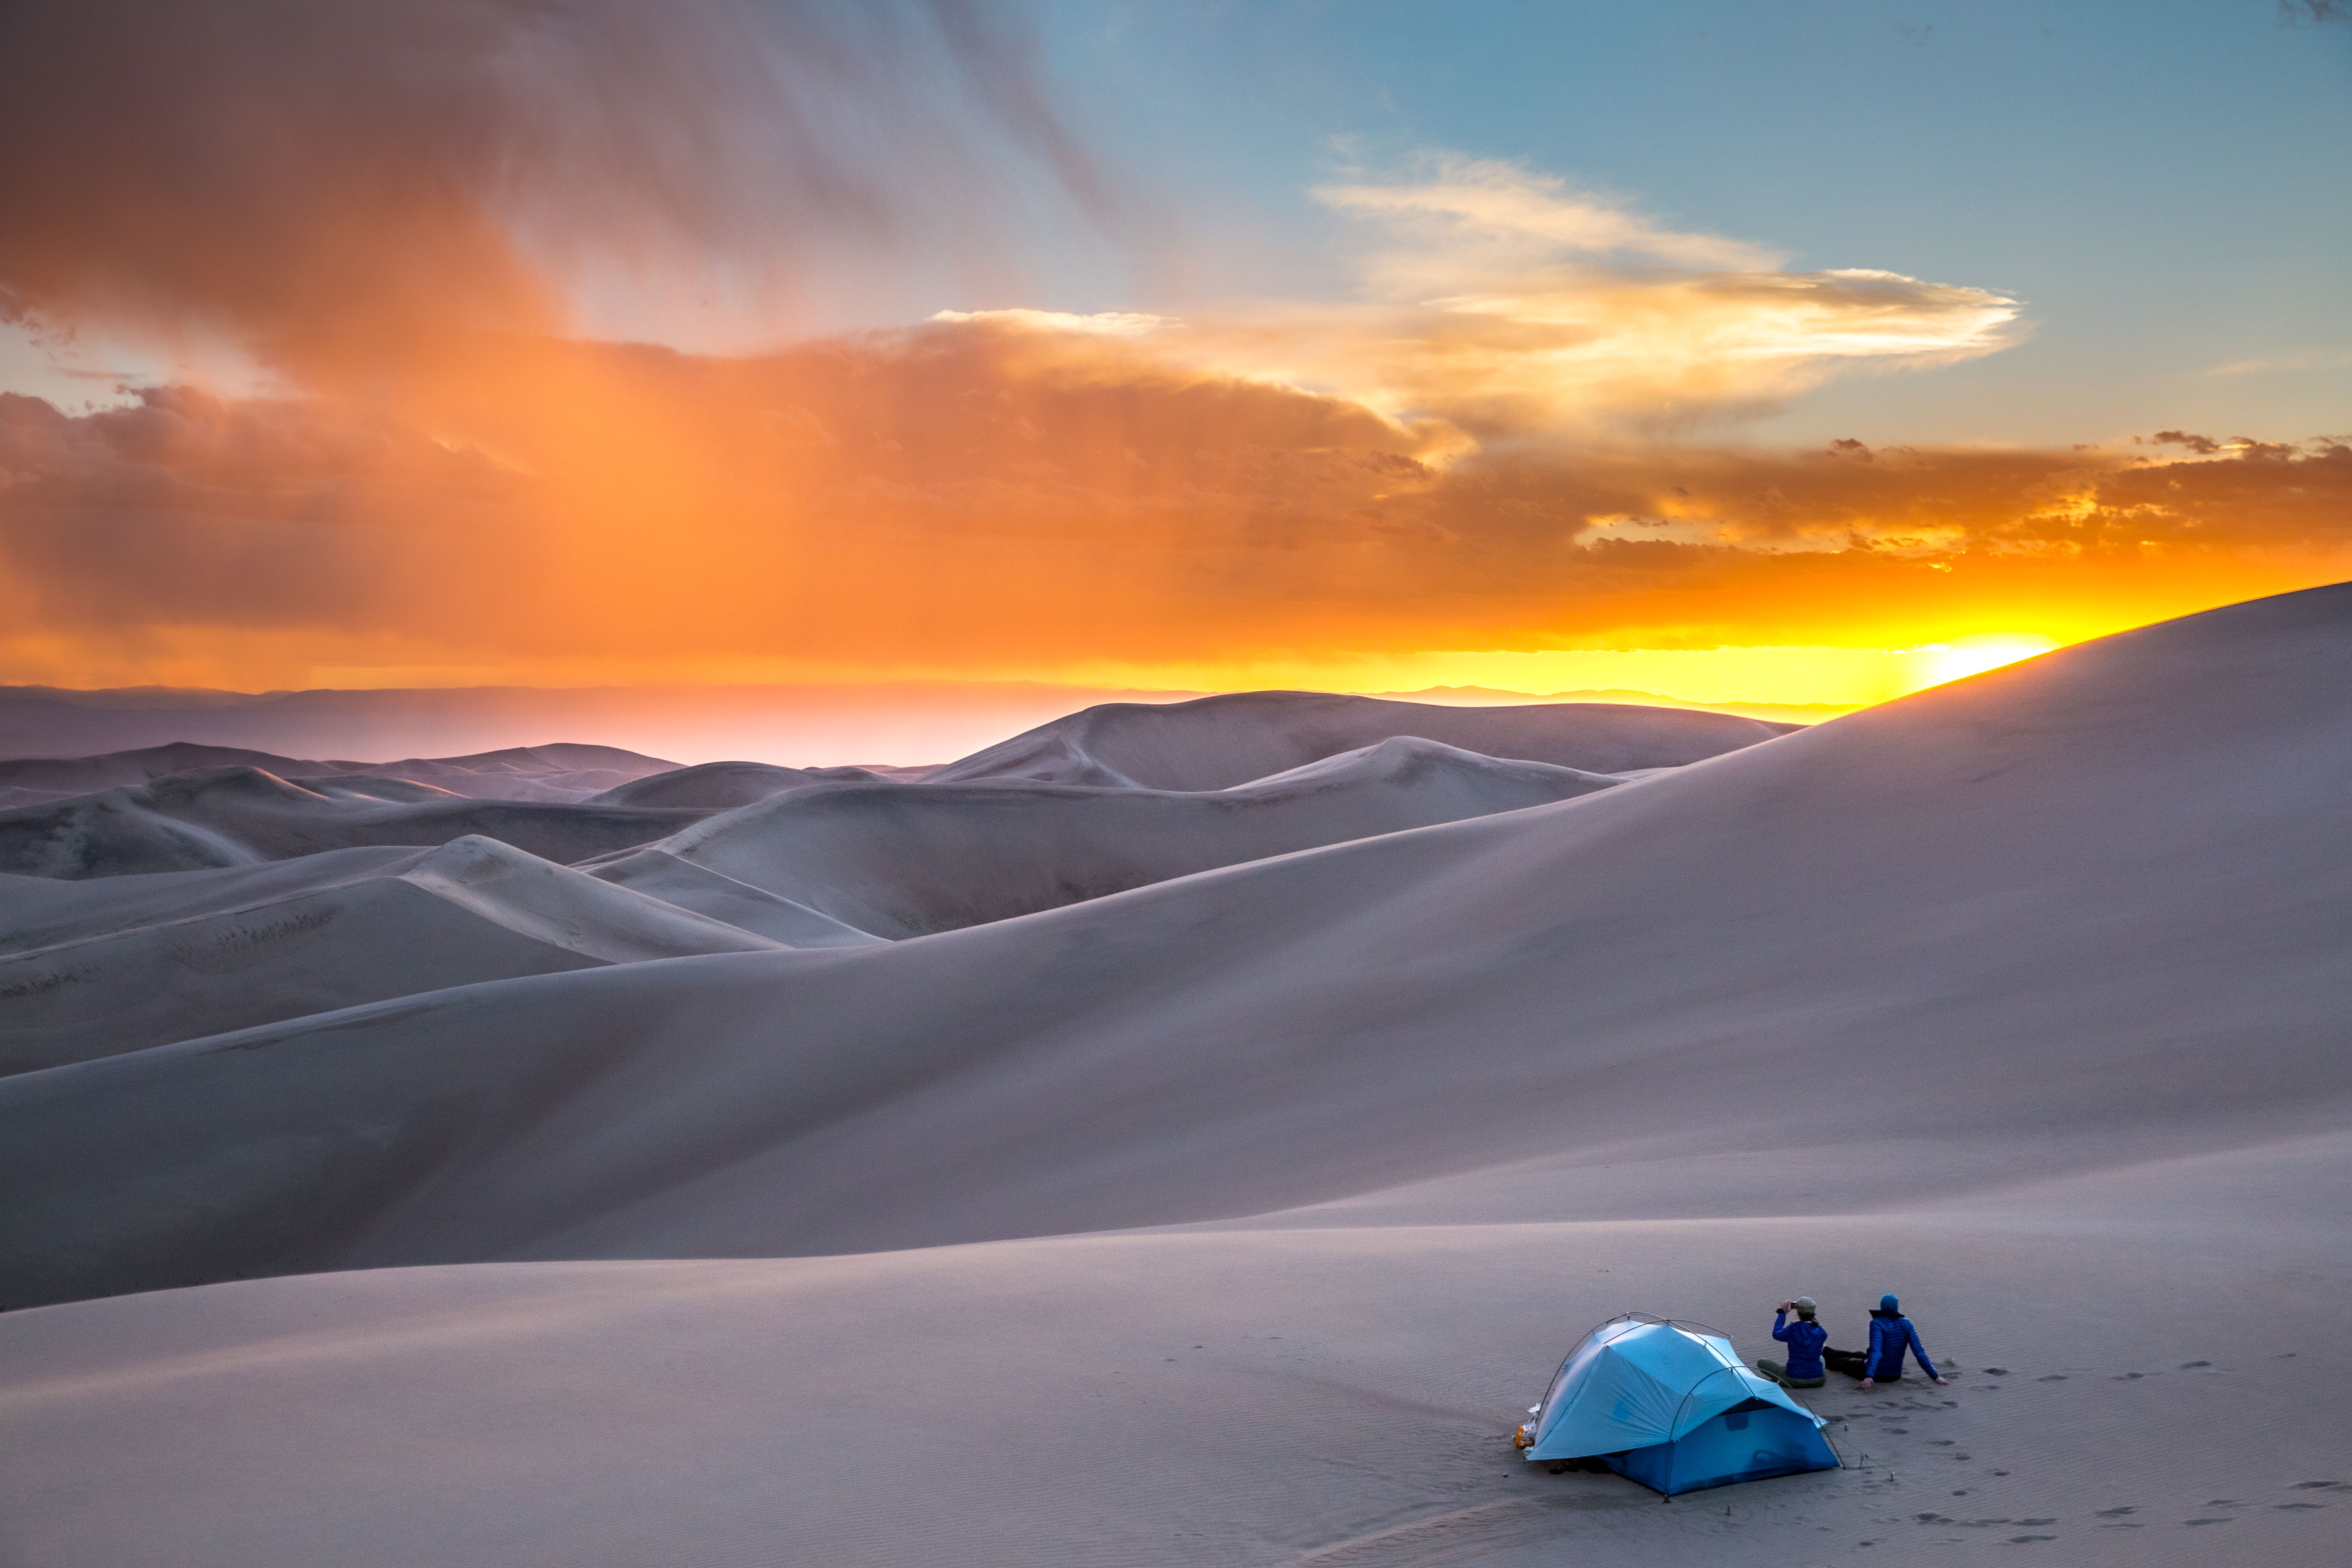 A trip to the Great Sand Dunes National Park | FOX31 Denver |Great Sand Dunes National Park